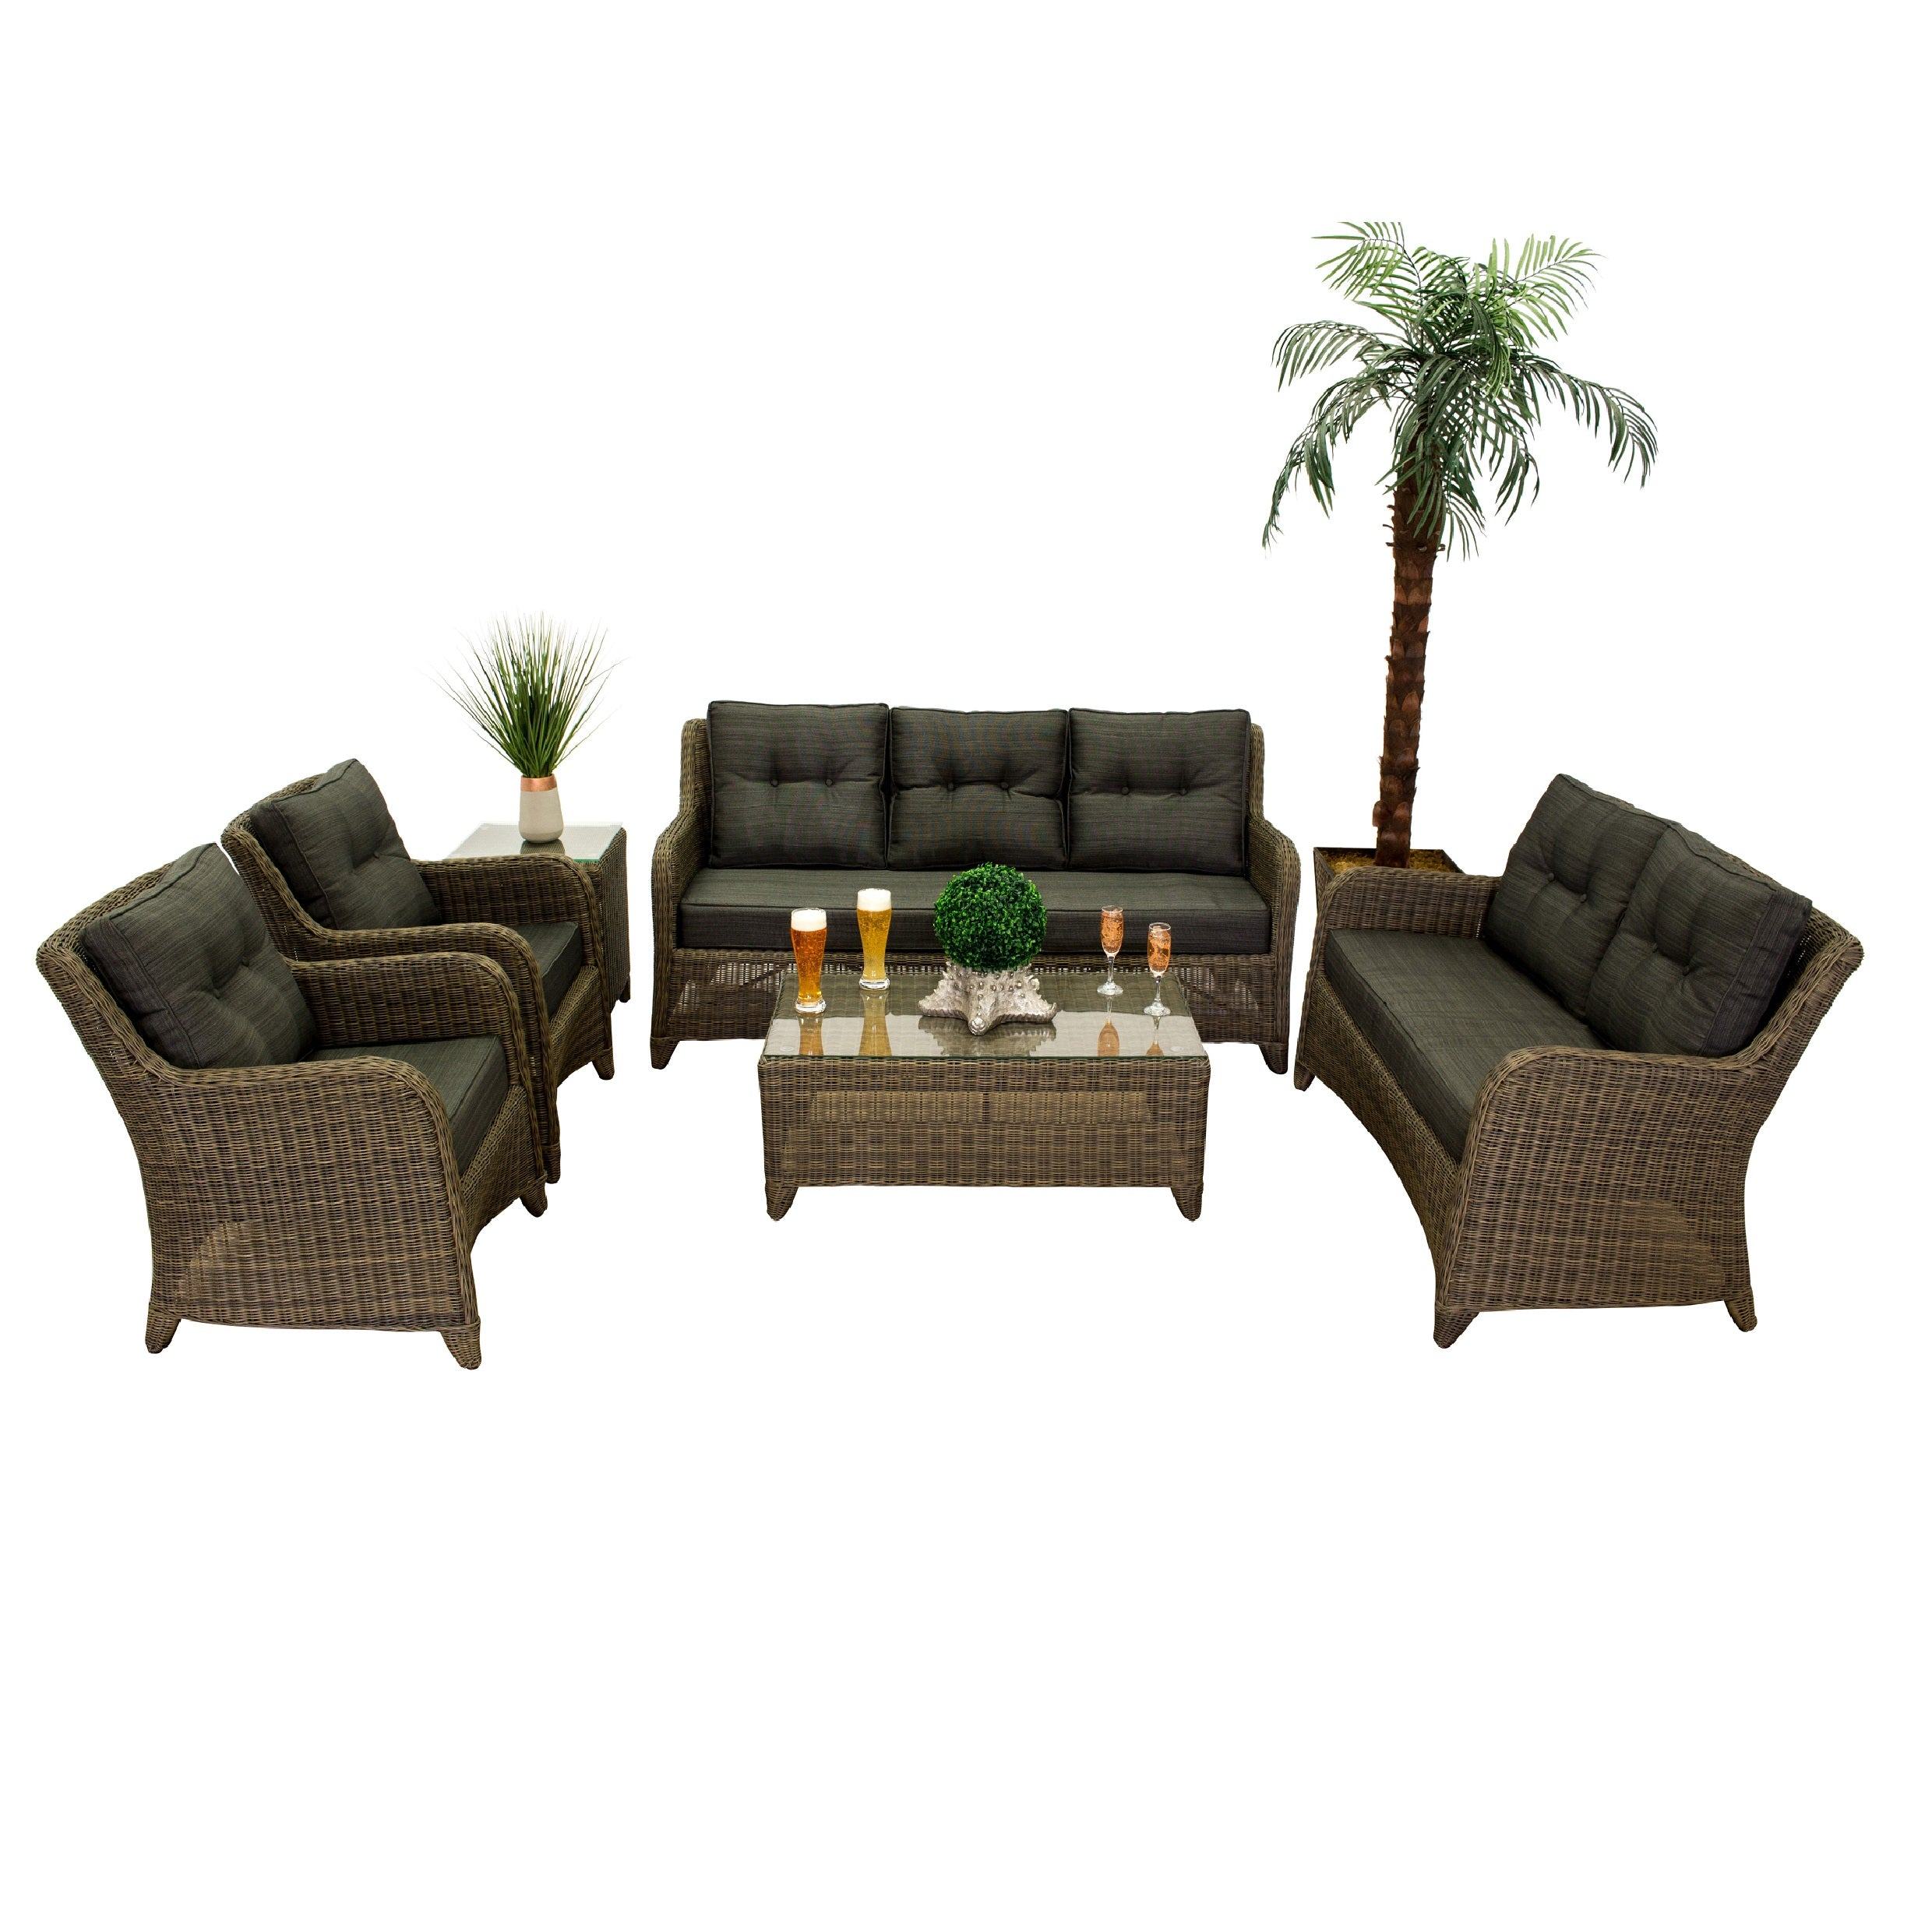 The Classic -  5pc. Sofa Set